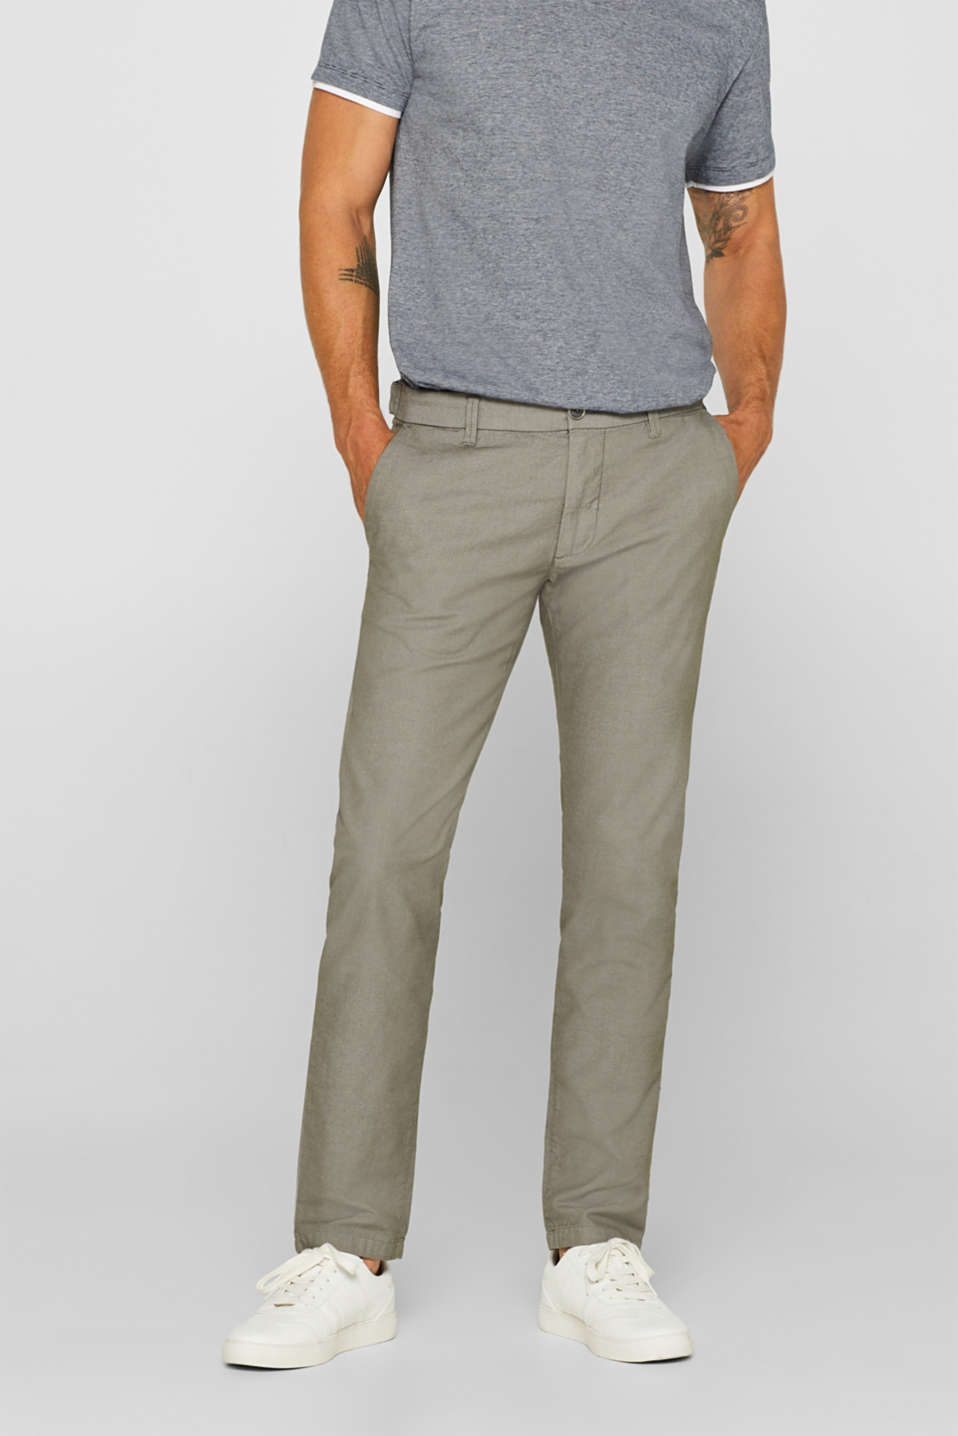 Esprit - Stretch-Pants aus Baumwoll-Mix